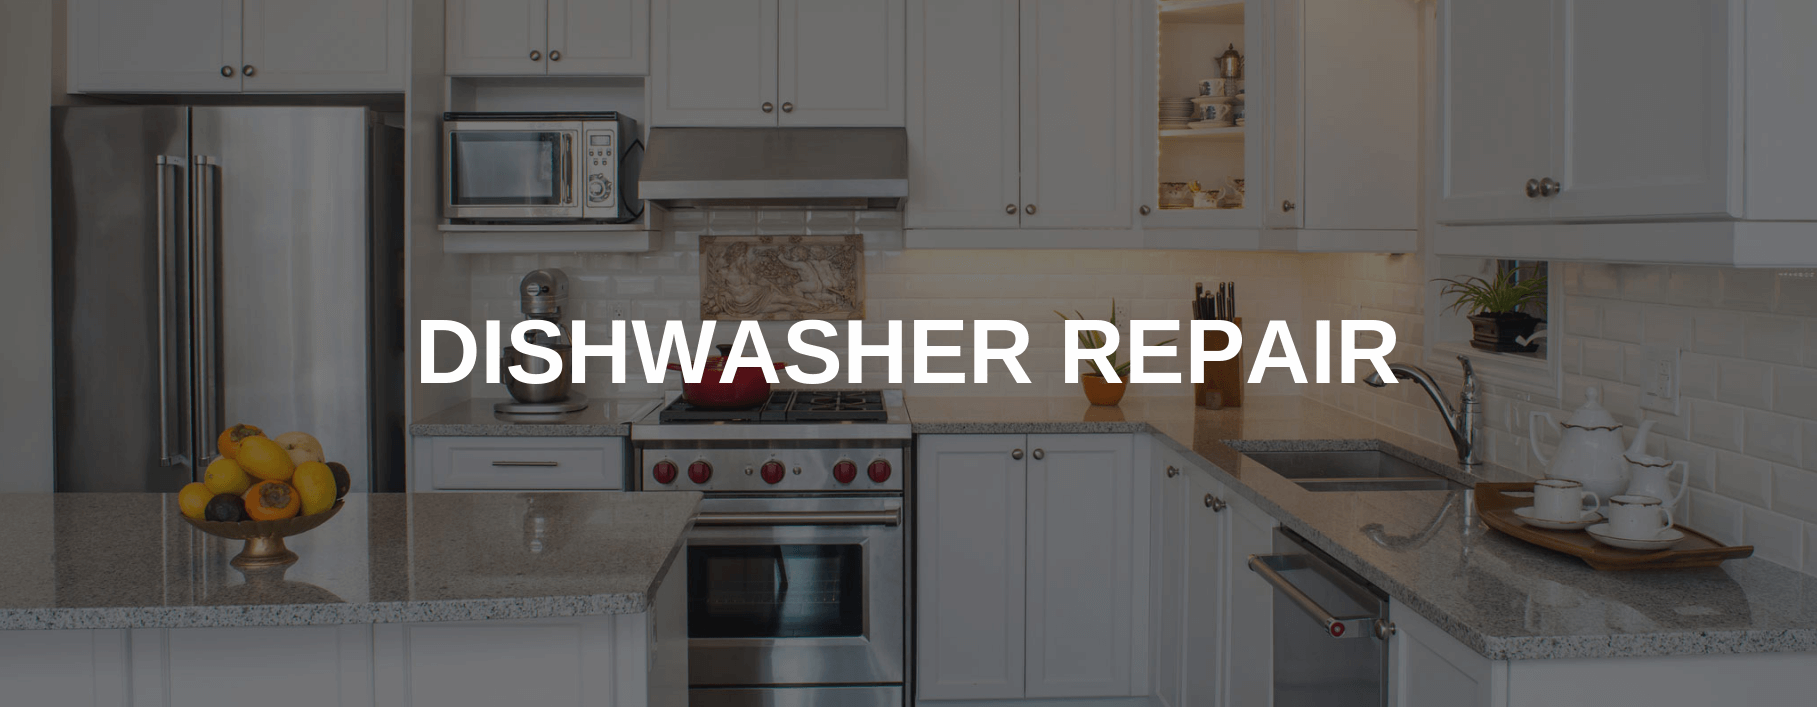 dishwasher repair worcester